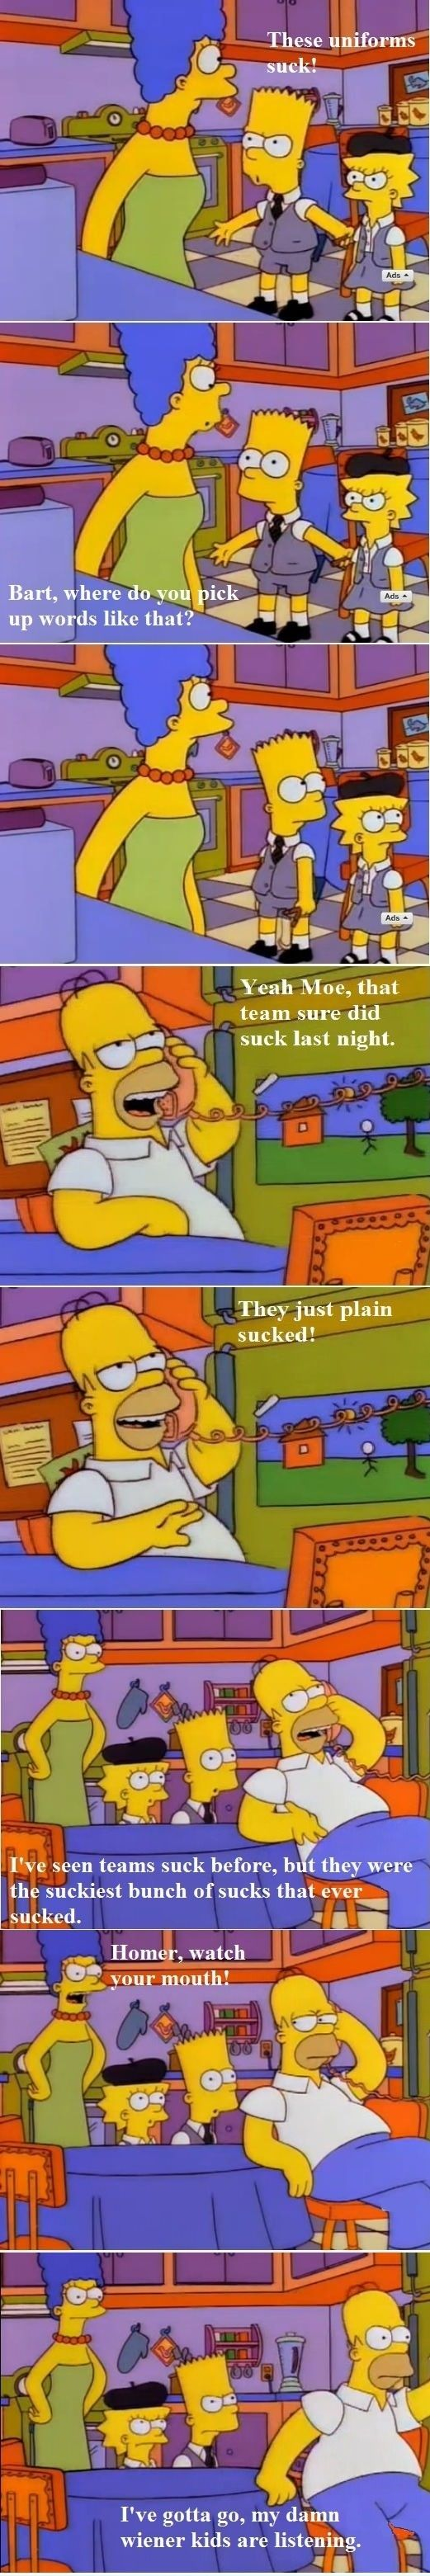 Homer, watch your mouth! // funny pictures - funny photos - funny images - funny pics - funny quotes - #lol #humor #funnypictures